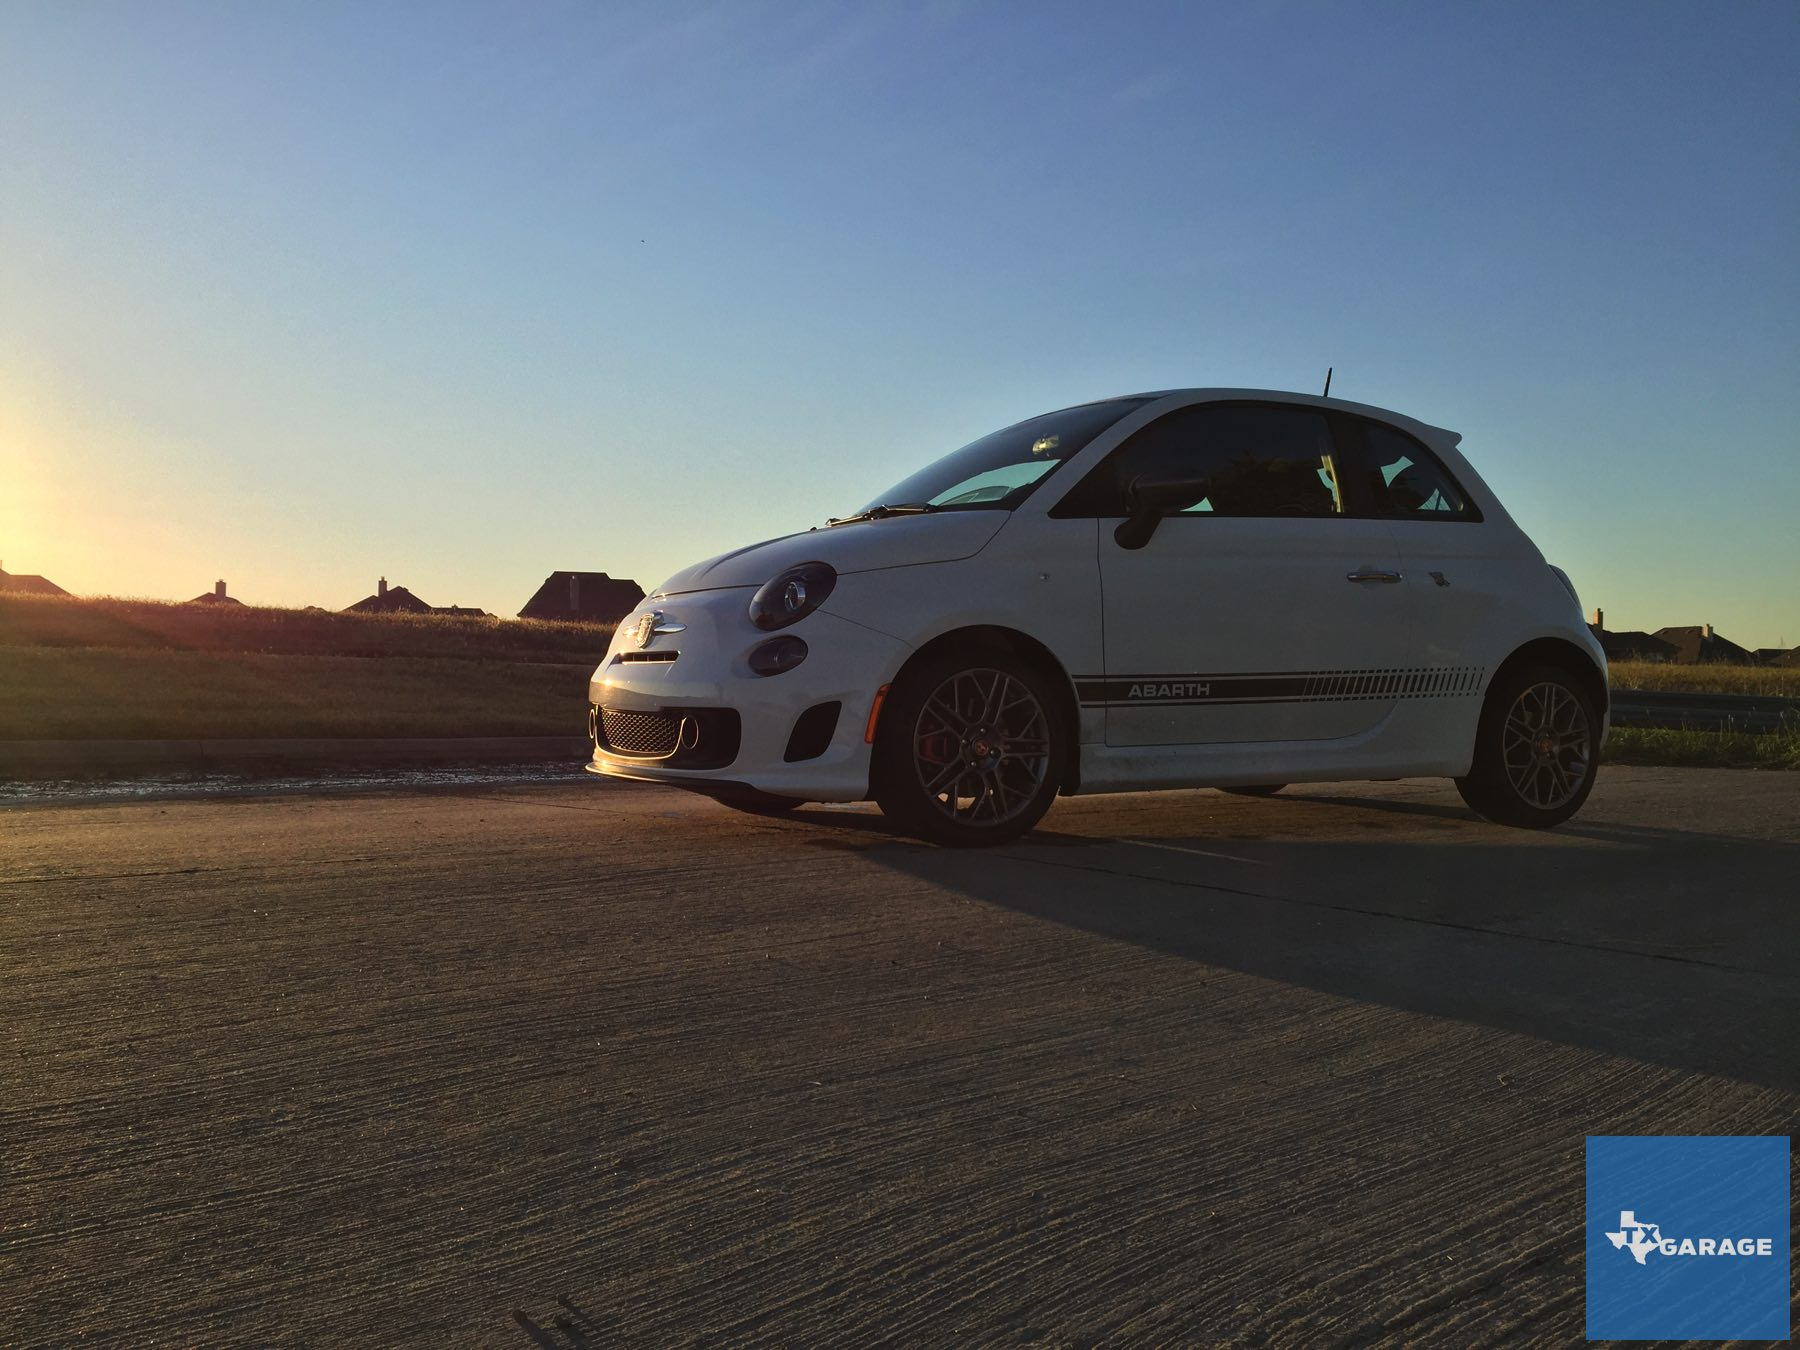 Italy at home in Texas. The Fiat 500 Abarth.